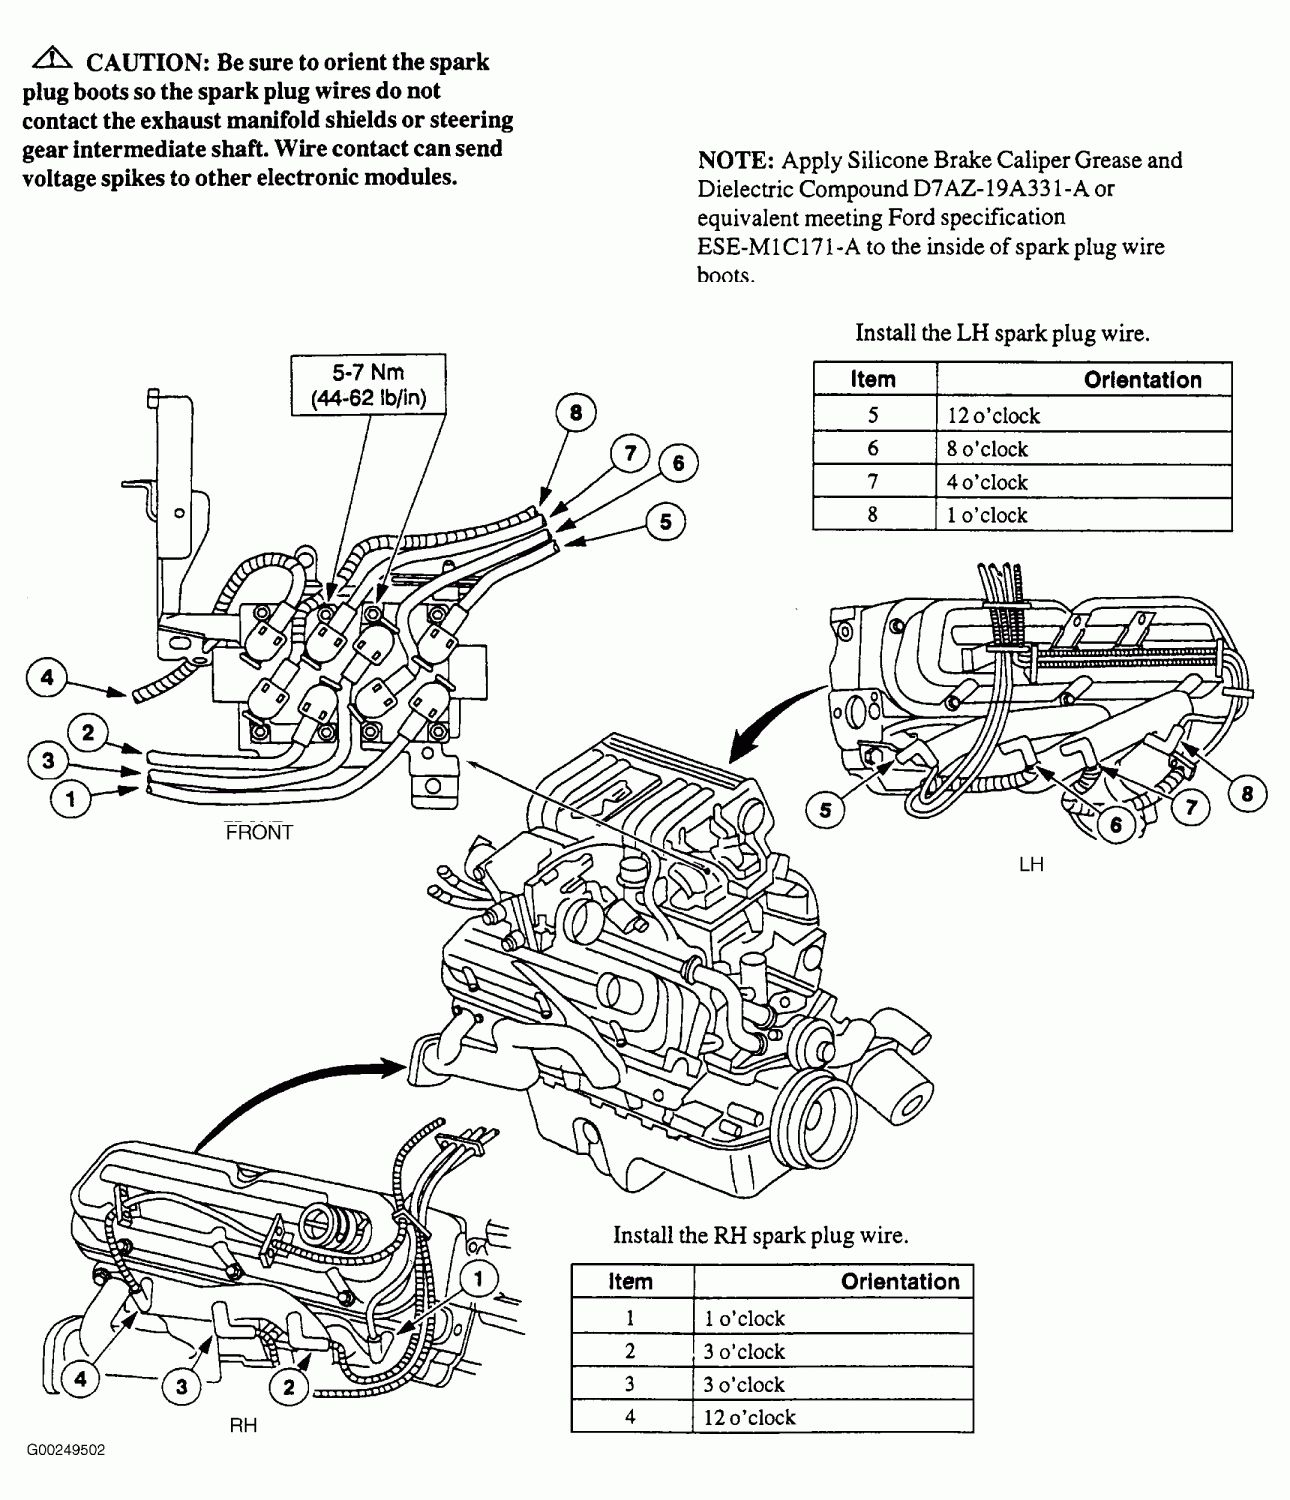 1996 Ford Explorer Engine Wiring Diagram and Firing Order Needed: I Have  The Vehicle Listed Above With A in 2020 | Ford explorer, Ford, EngineeringPinterest